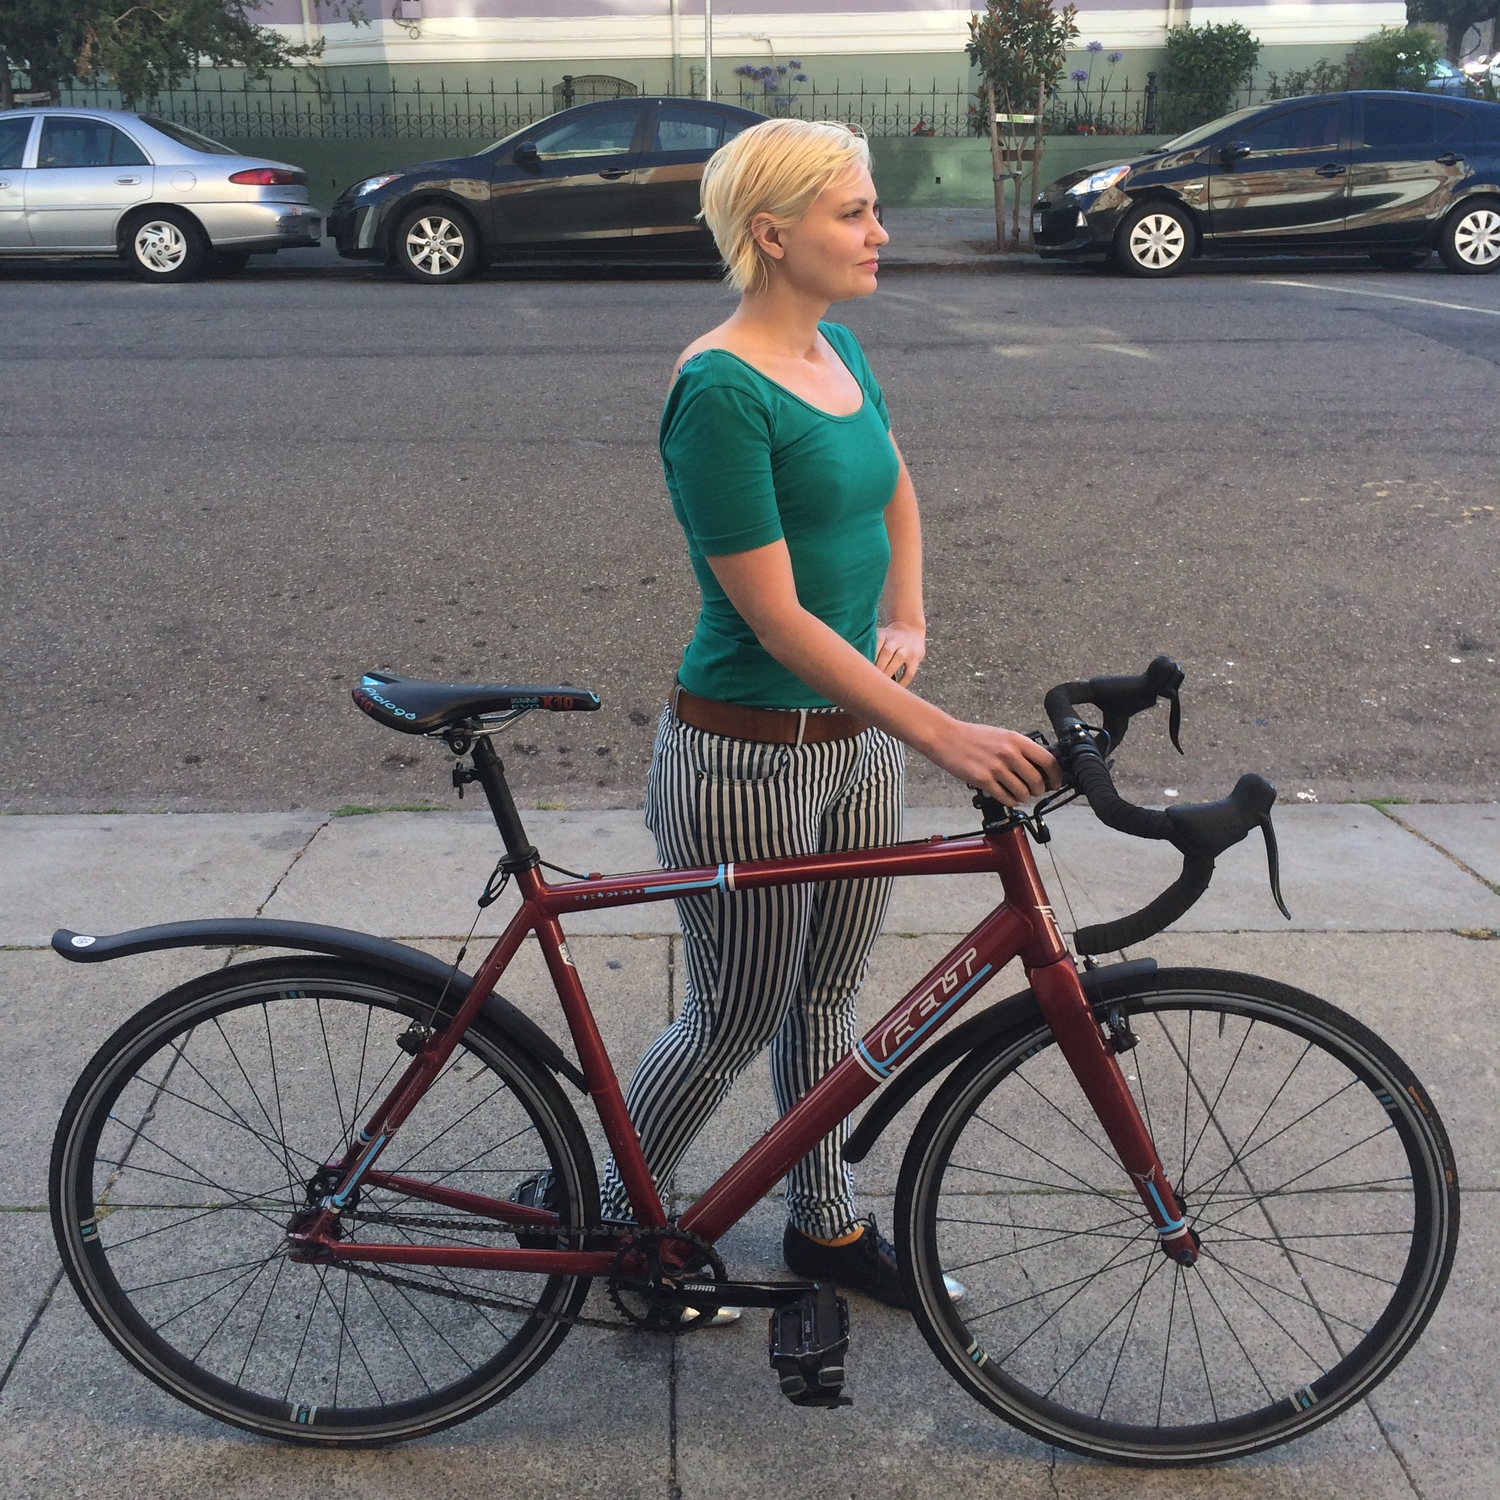 Stand with your bike on your right and position yourself about halfway between the seat and the handlebars. You will be standing on the opposite side of the chain which will help prevent accidentally greasing up your snazzy new fashion pants.